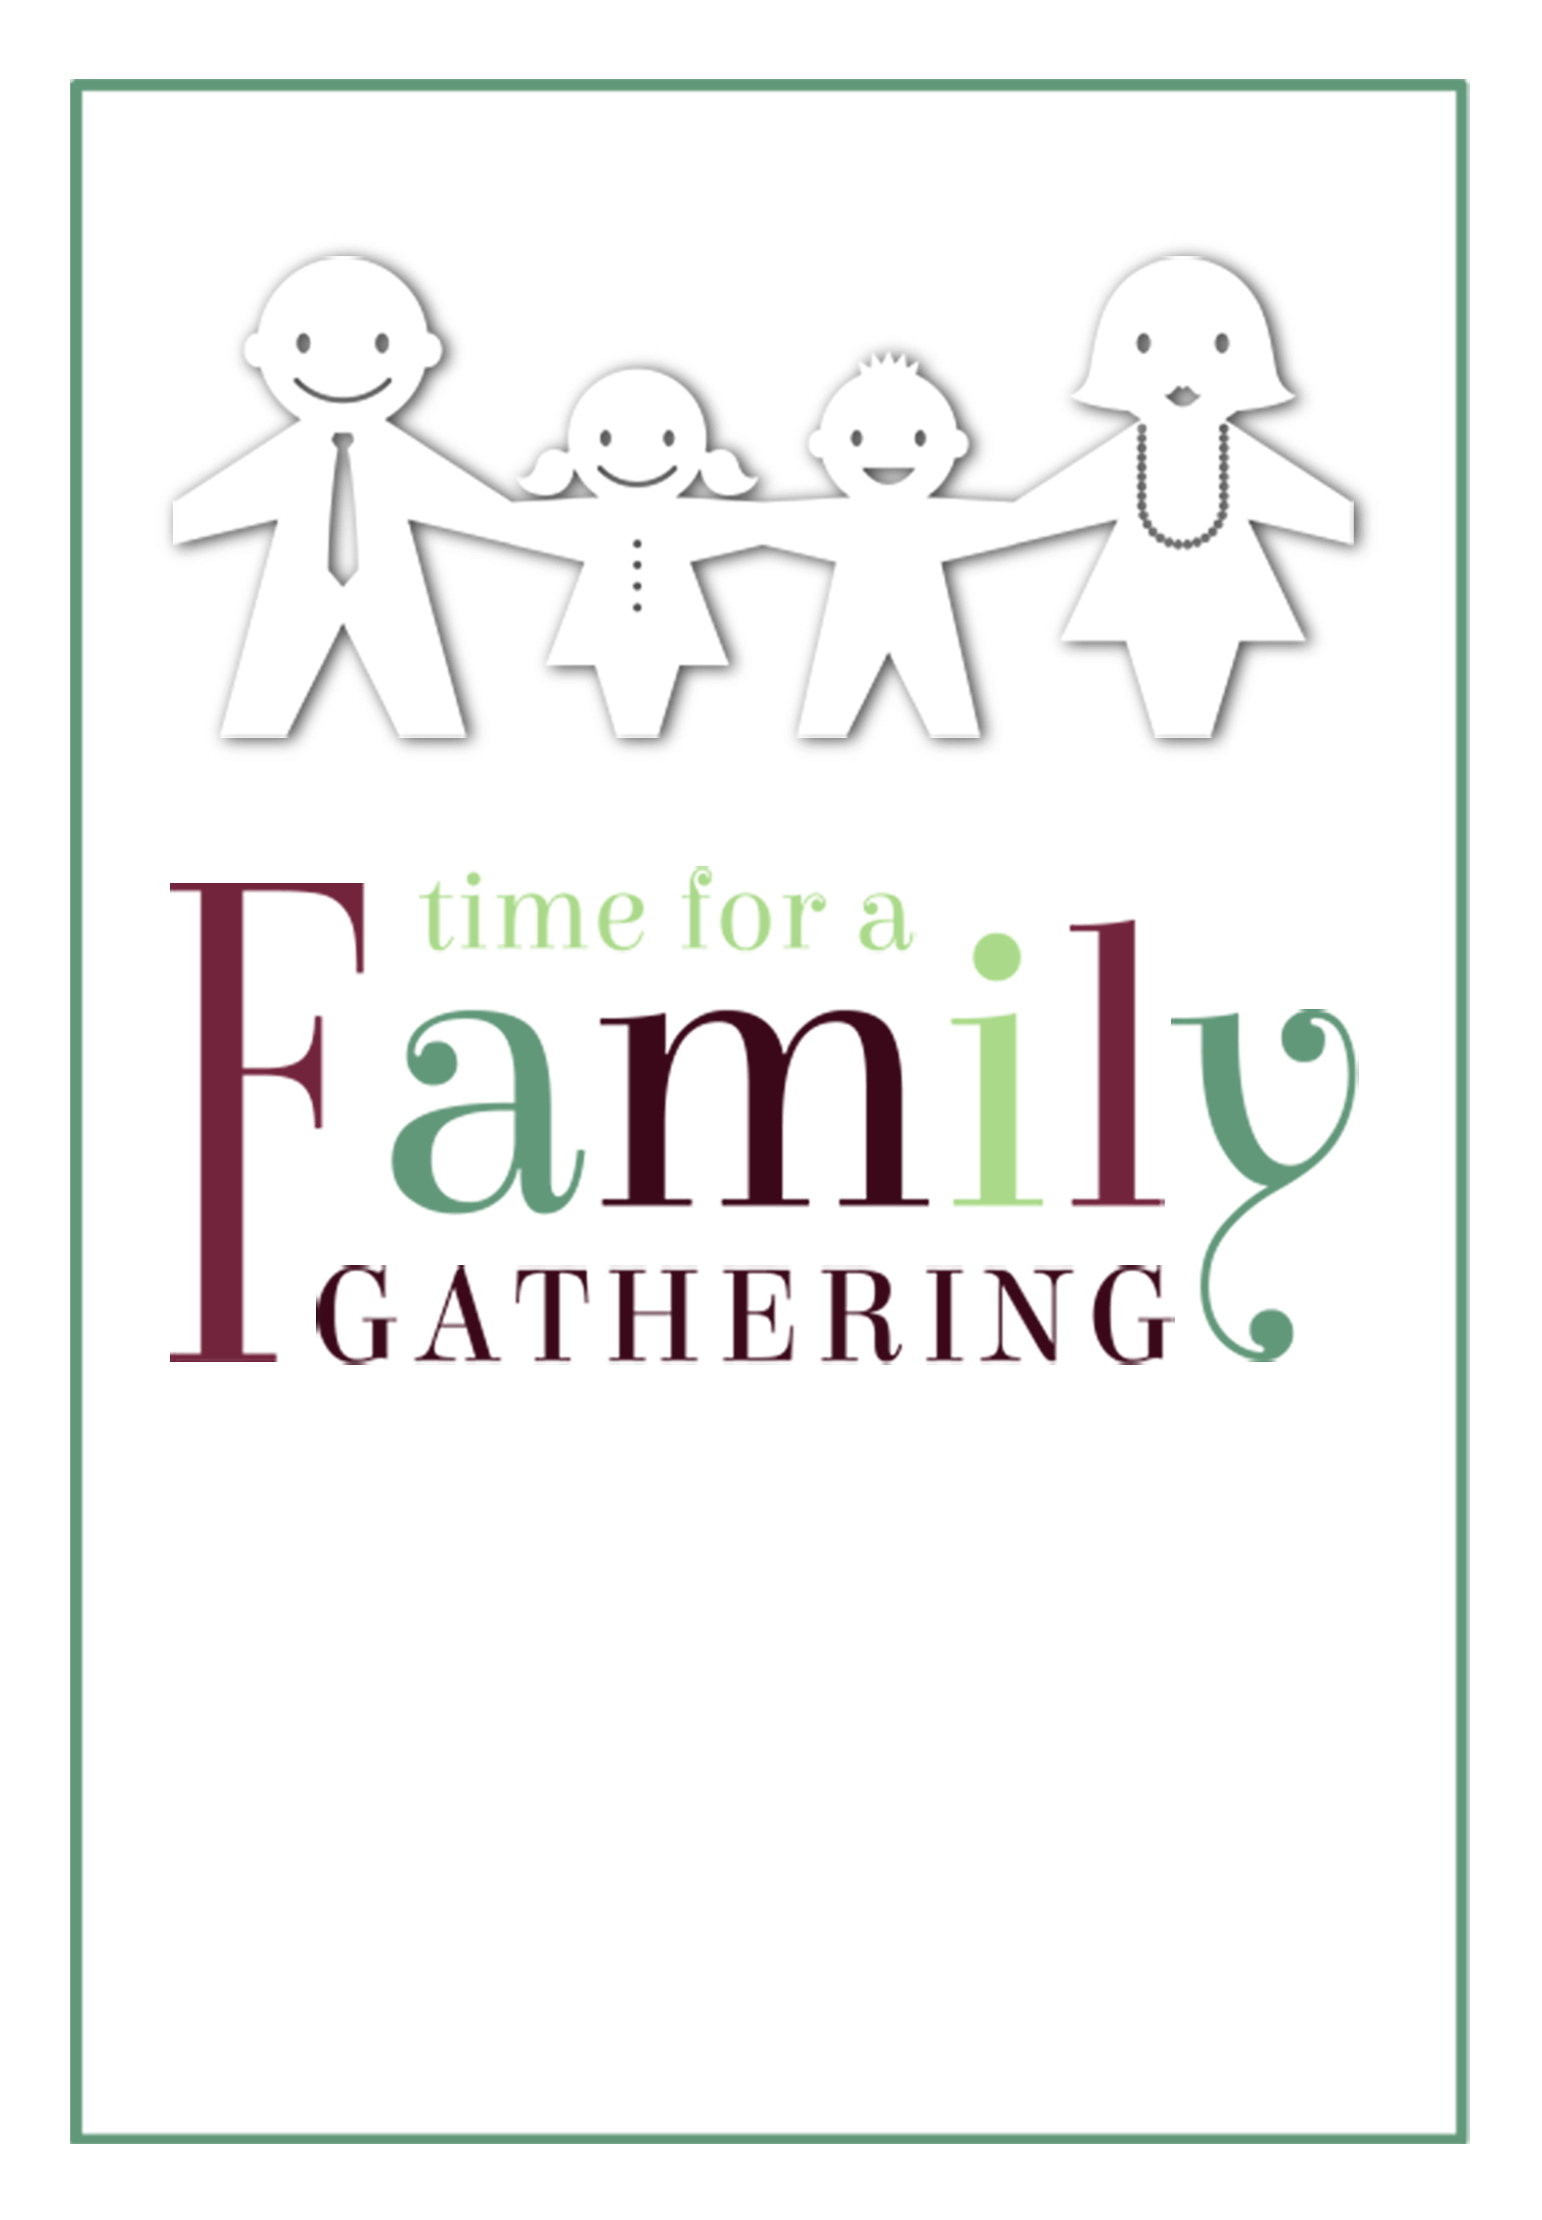 Time For A Family Gathering - Free Printable Family Reunion - Free Printable Family Reunion Invitations